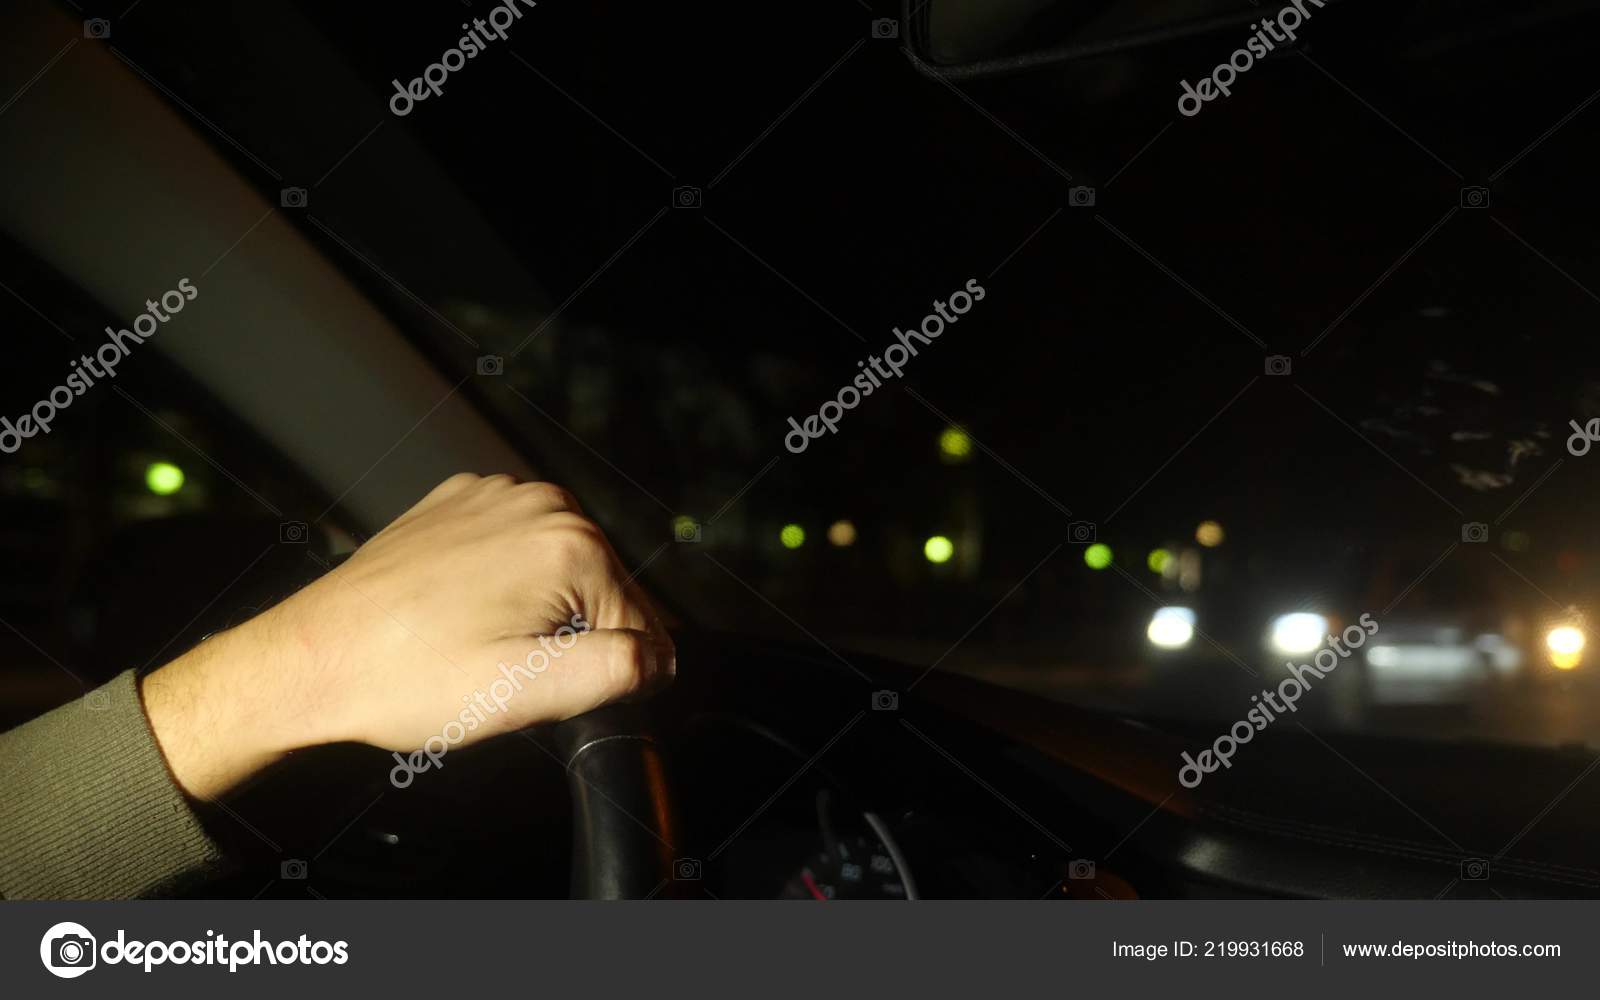 Hand On The Steering Wheel Of The Car Evening Night Time Left Side Traffic Blurred Lights Outside The Window Stock Photo Image By C Expsycholog Gmail Com 219931668